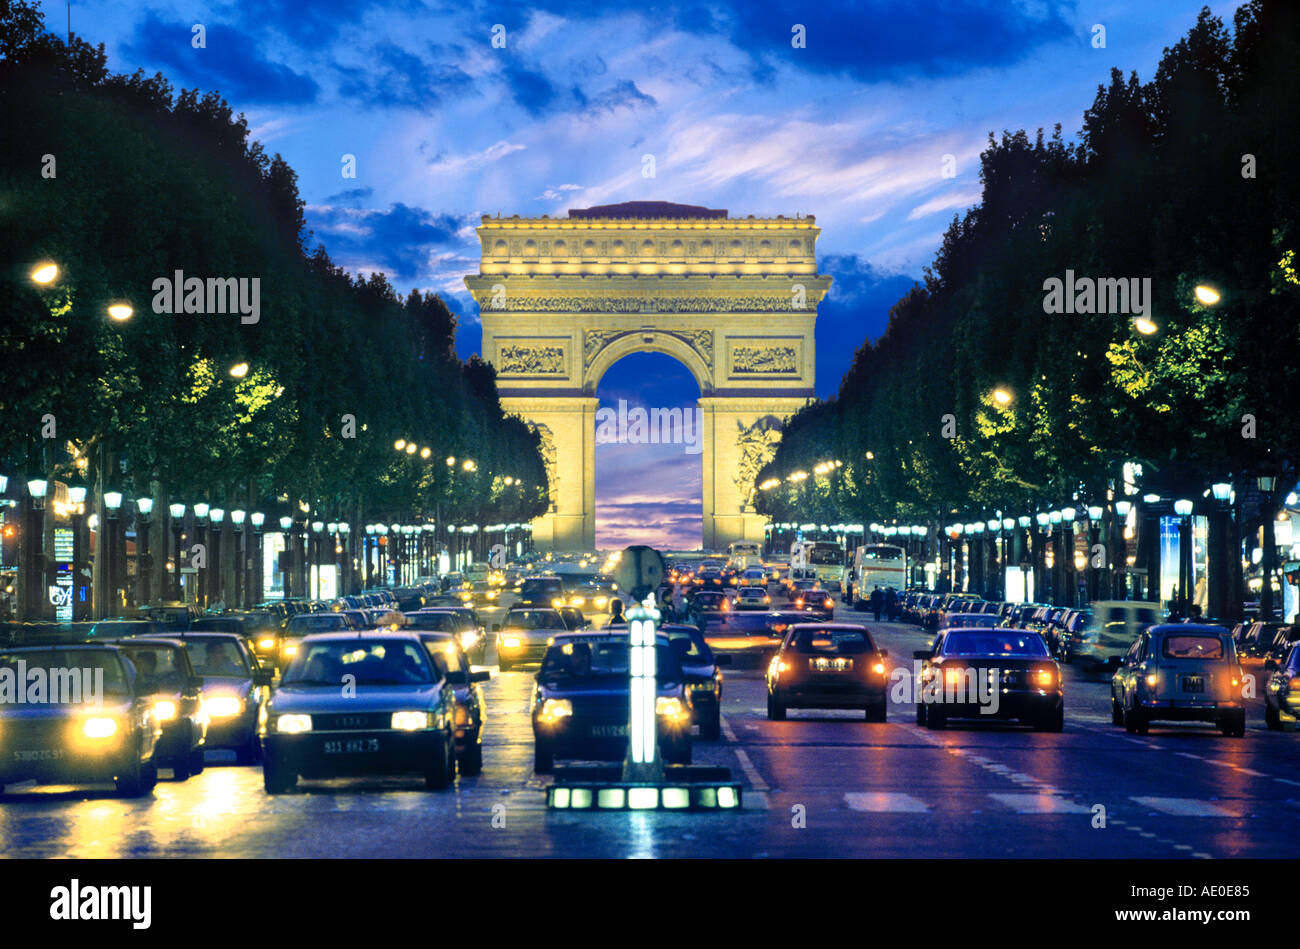 Avenue De Paris Stock Photos  U0026 Avenue De Paris Stock